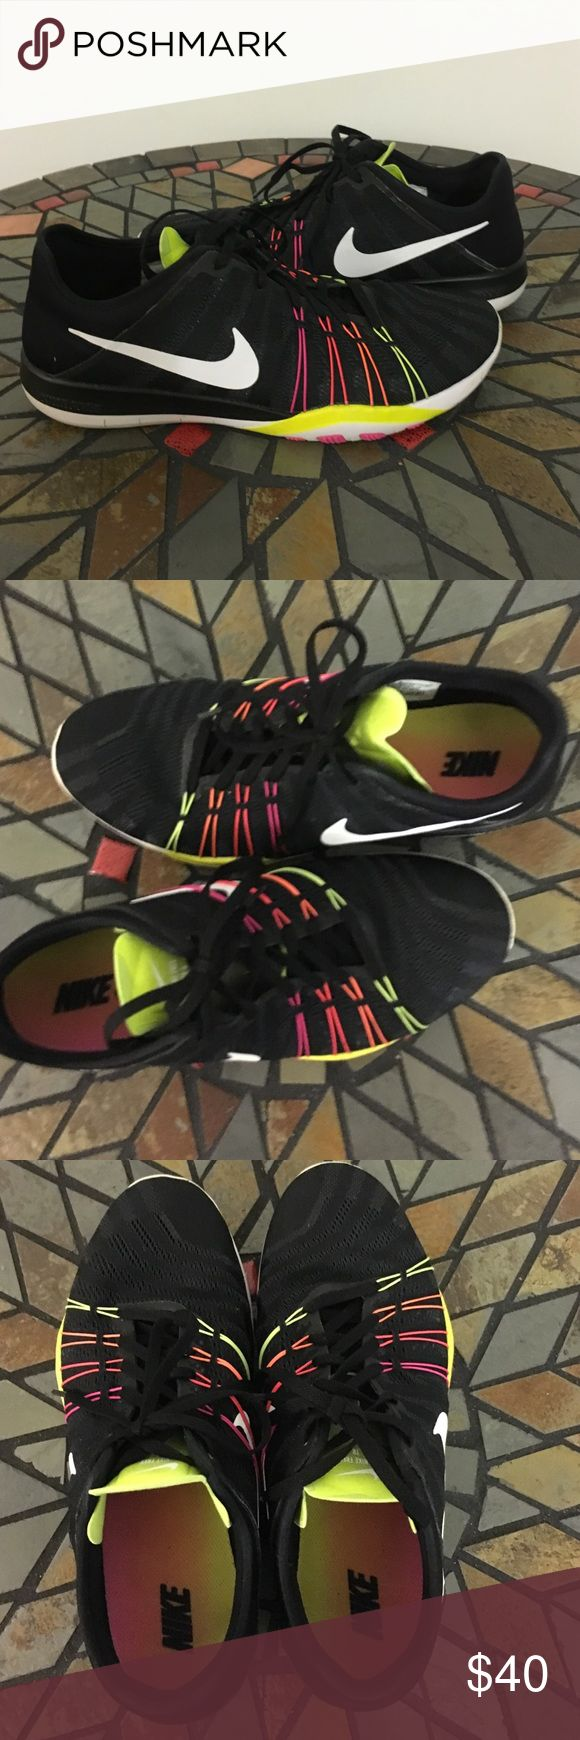 Nike free tr 6 black rainbow sneaker like new! Super comfy & sleek these make running look easy! Tagged size 9.5 but can also fit a 10 depending on your socks. Worn once but look new don't miss out! Nike Shoes Athletic Shoes